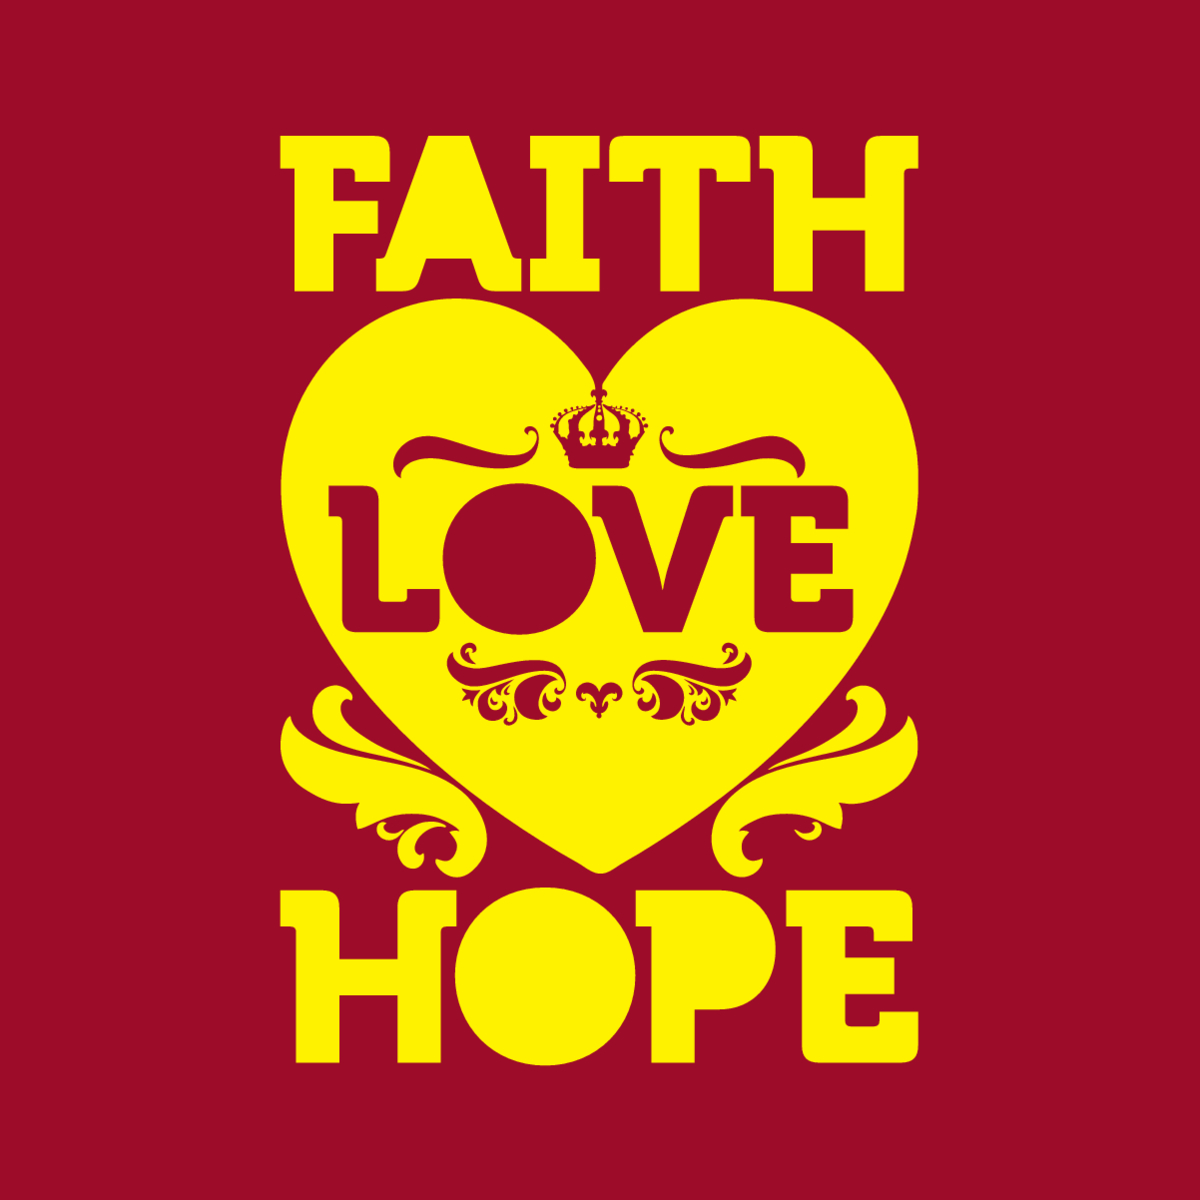 the words FAITH, LOVE, HOPE with a heart on a red background